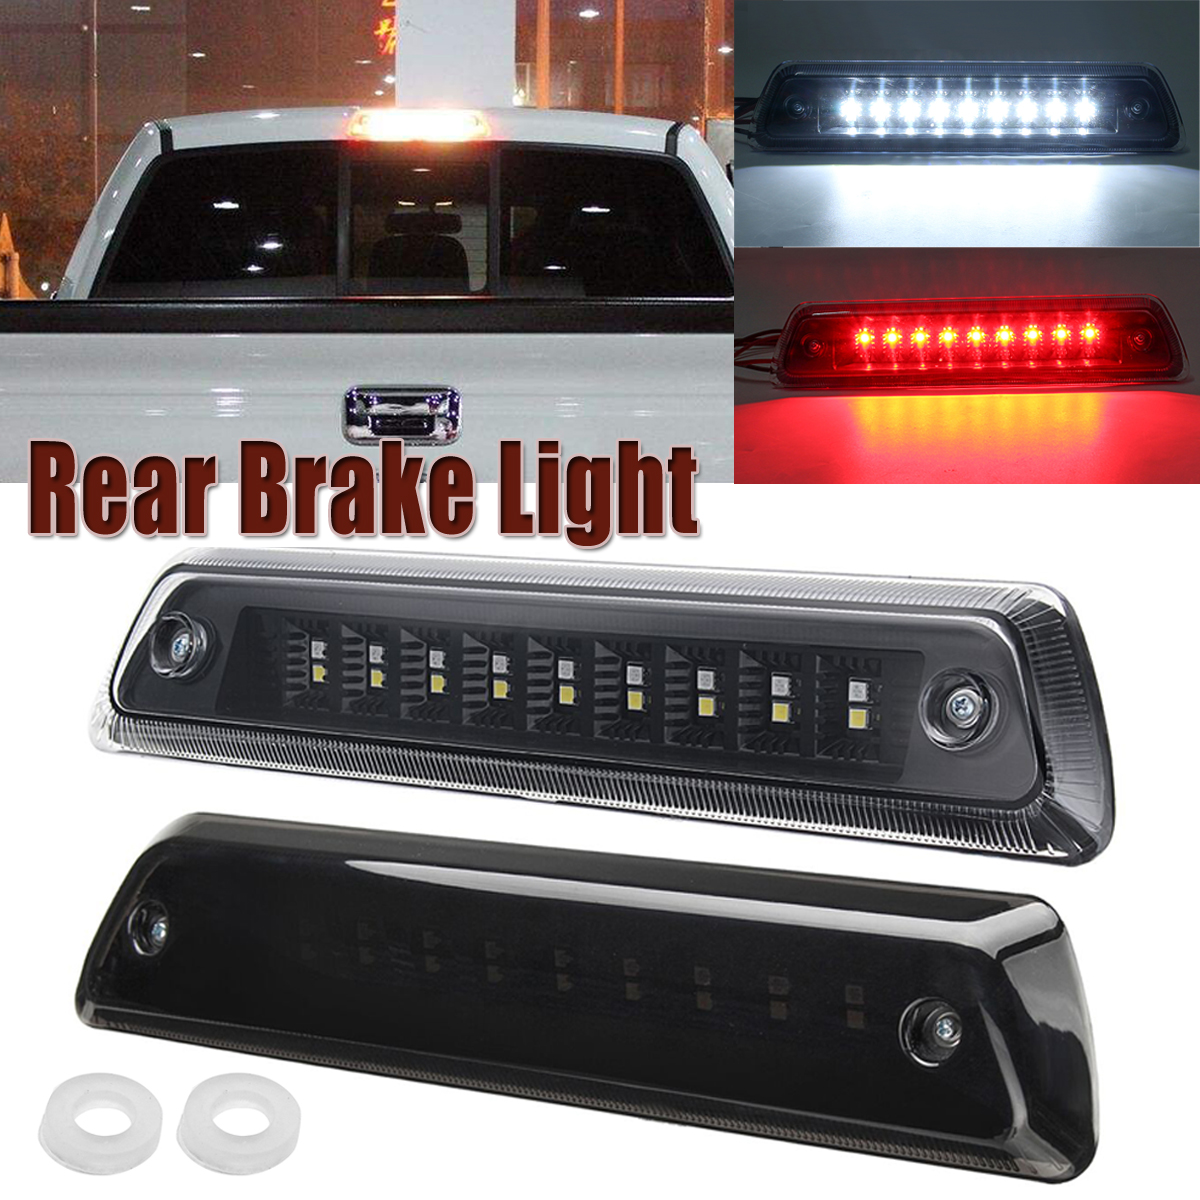 1x Pickup Truck LED Third Rear Tail Light 3rd Brake Lamp for Ford F150 2009 2010 2011 2012 2013 2014 Car Light Accessories 2 5w 32 led third brake tail light for vehicles